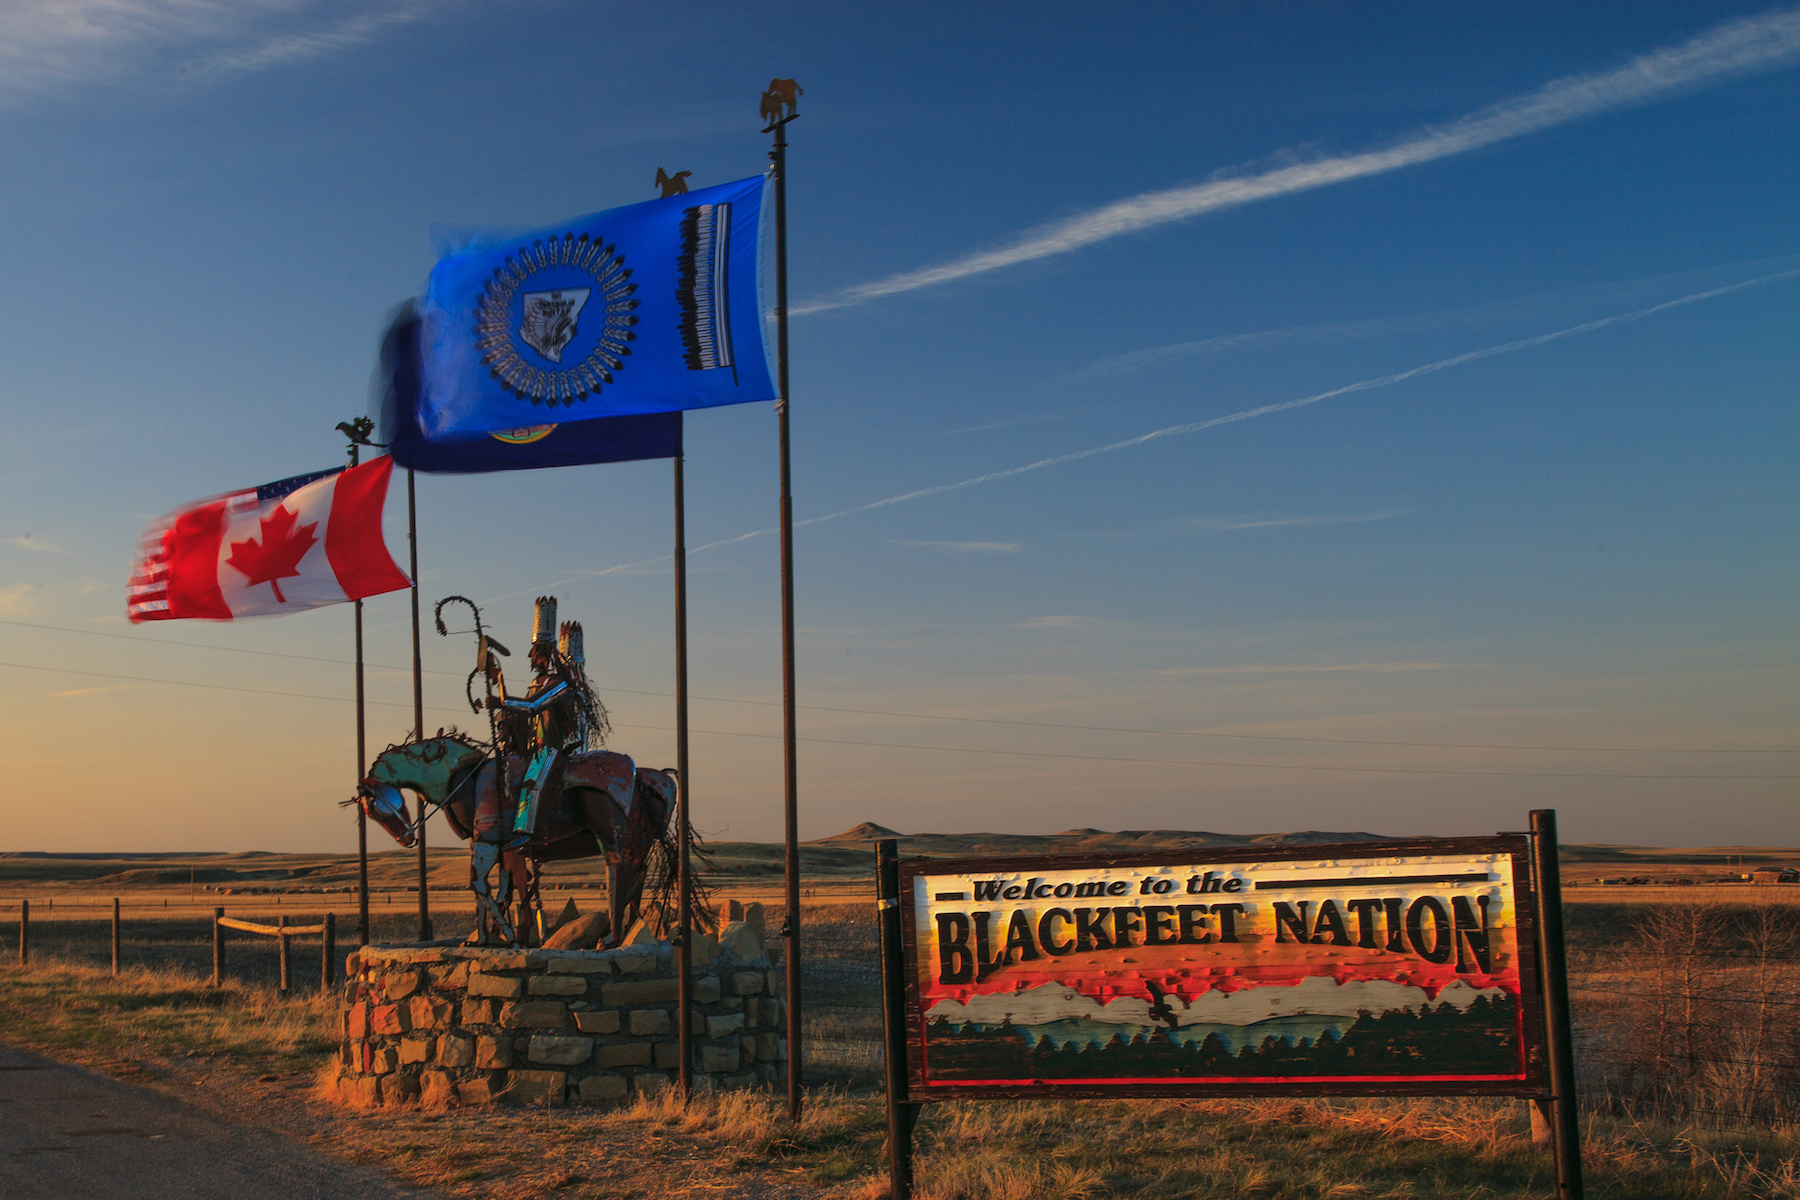 Blackfeet Nation voters reject changes to decades-old constitution